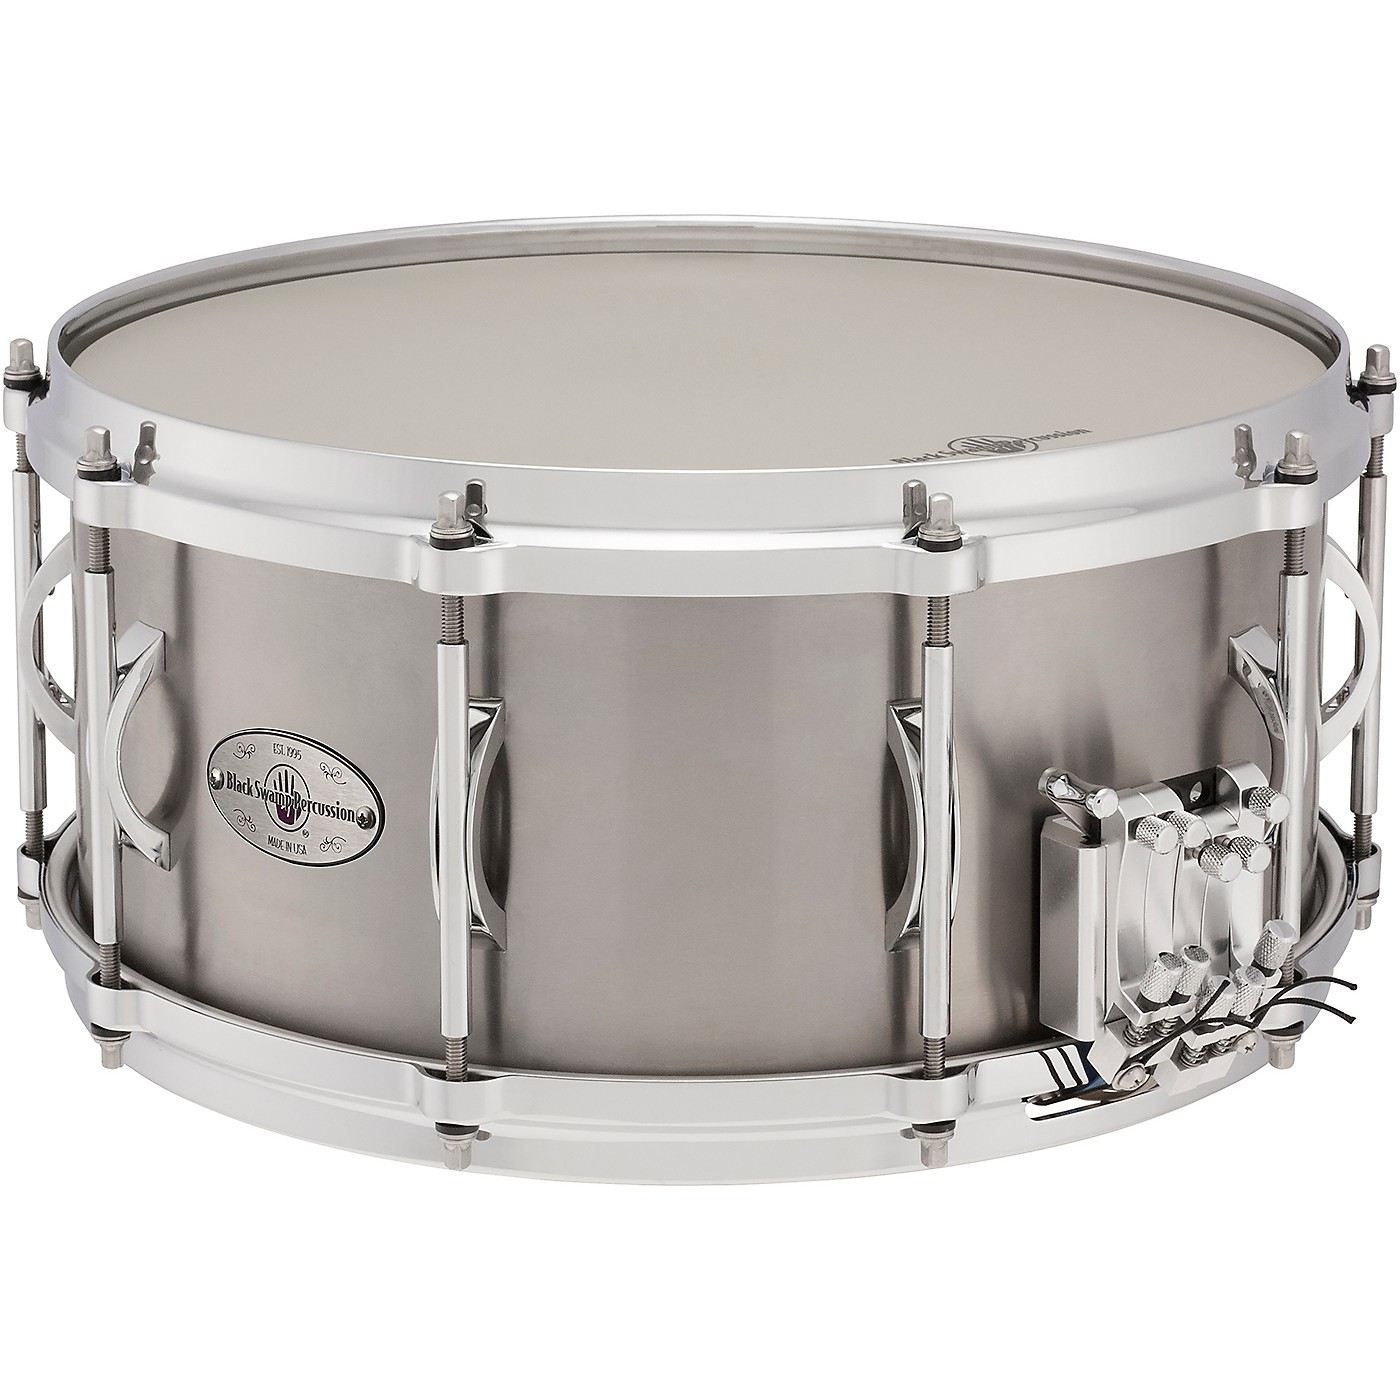 Black Swamp Percussion Multisonic Concert Titanium Snare Drum thumbnail